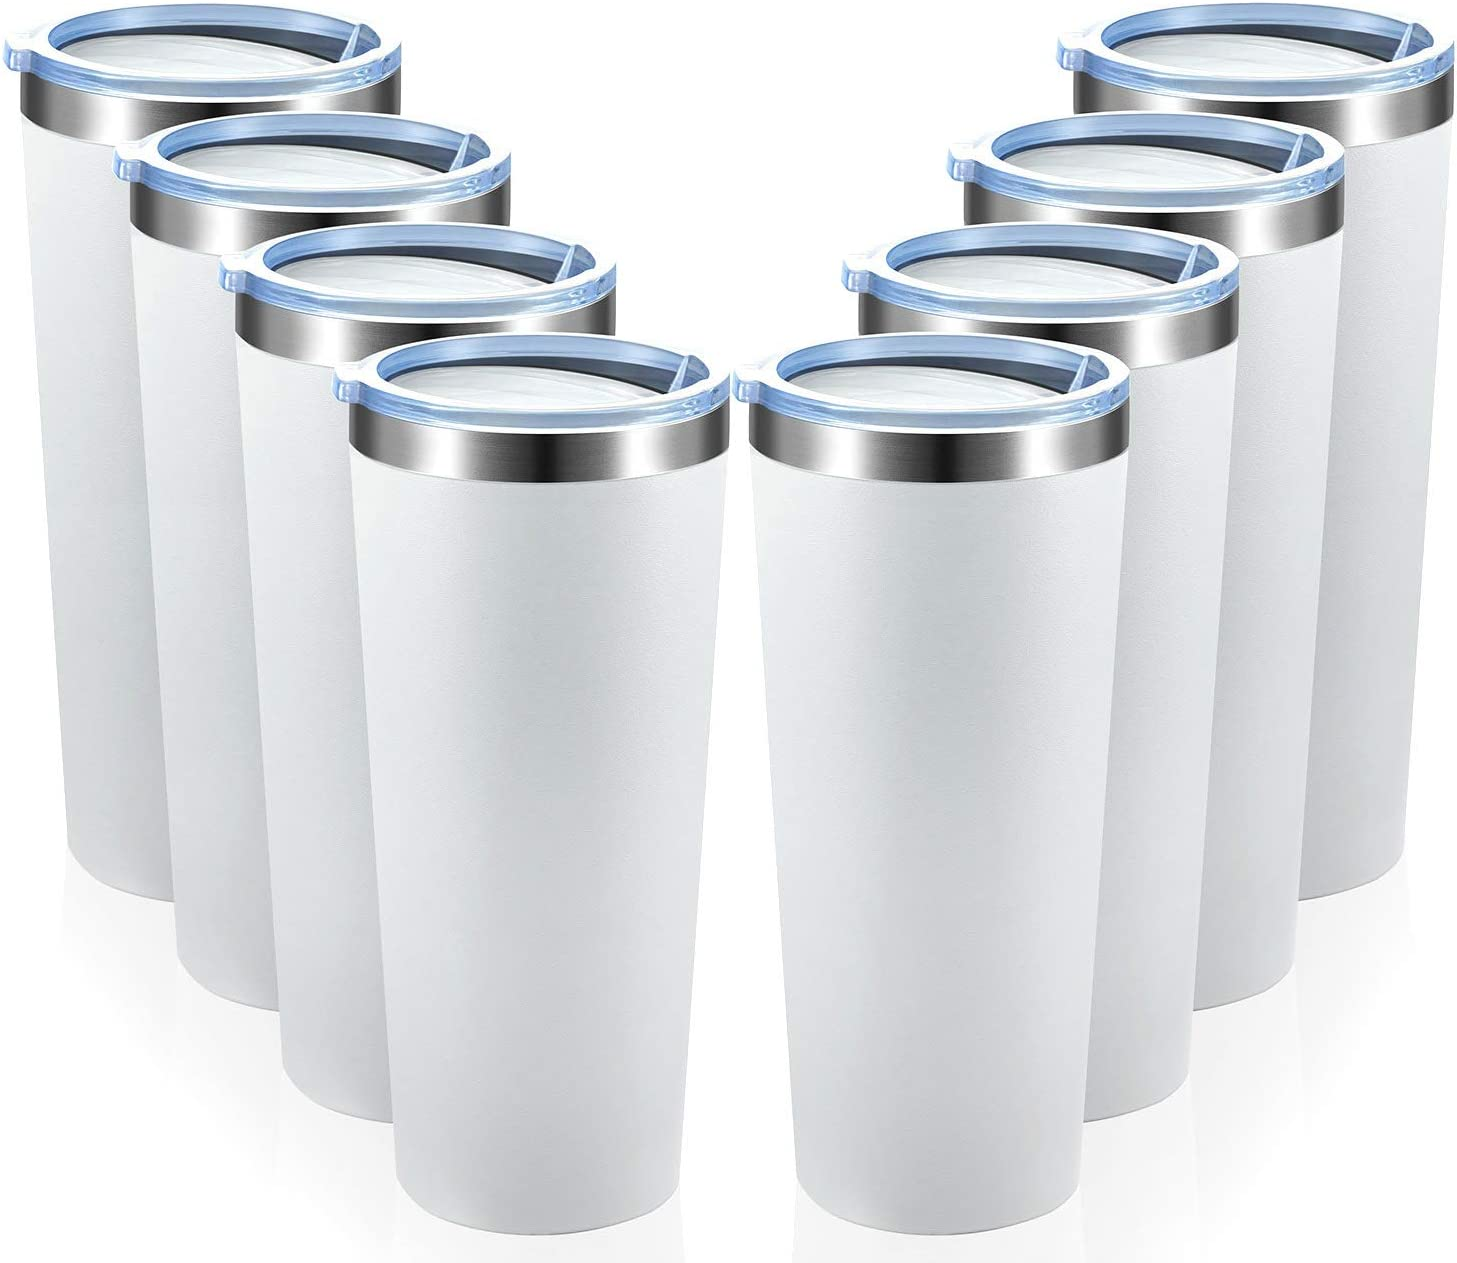 MEWAY 22oz Tumbler 8 Pack Stainless Steel Travel Coffee Mug with Lids Double Wall Insulated Coffee Cup for Home, Office, Travel Great (White, 8 pack)